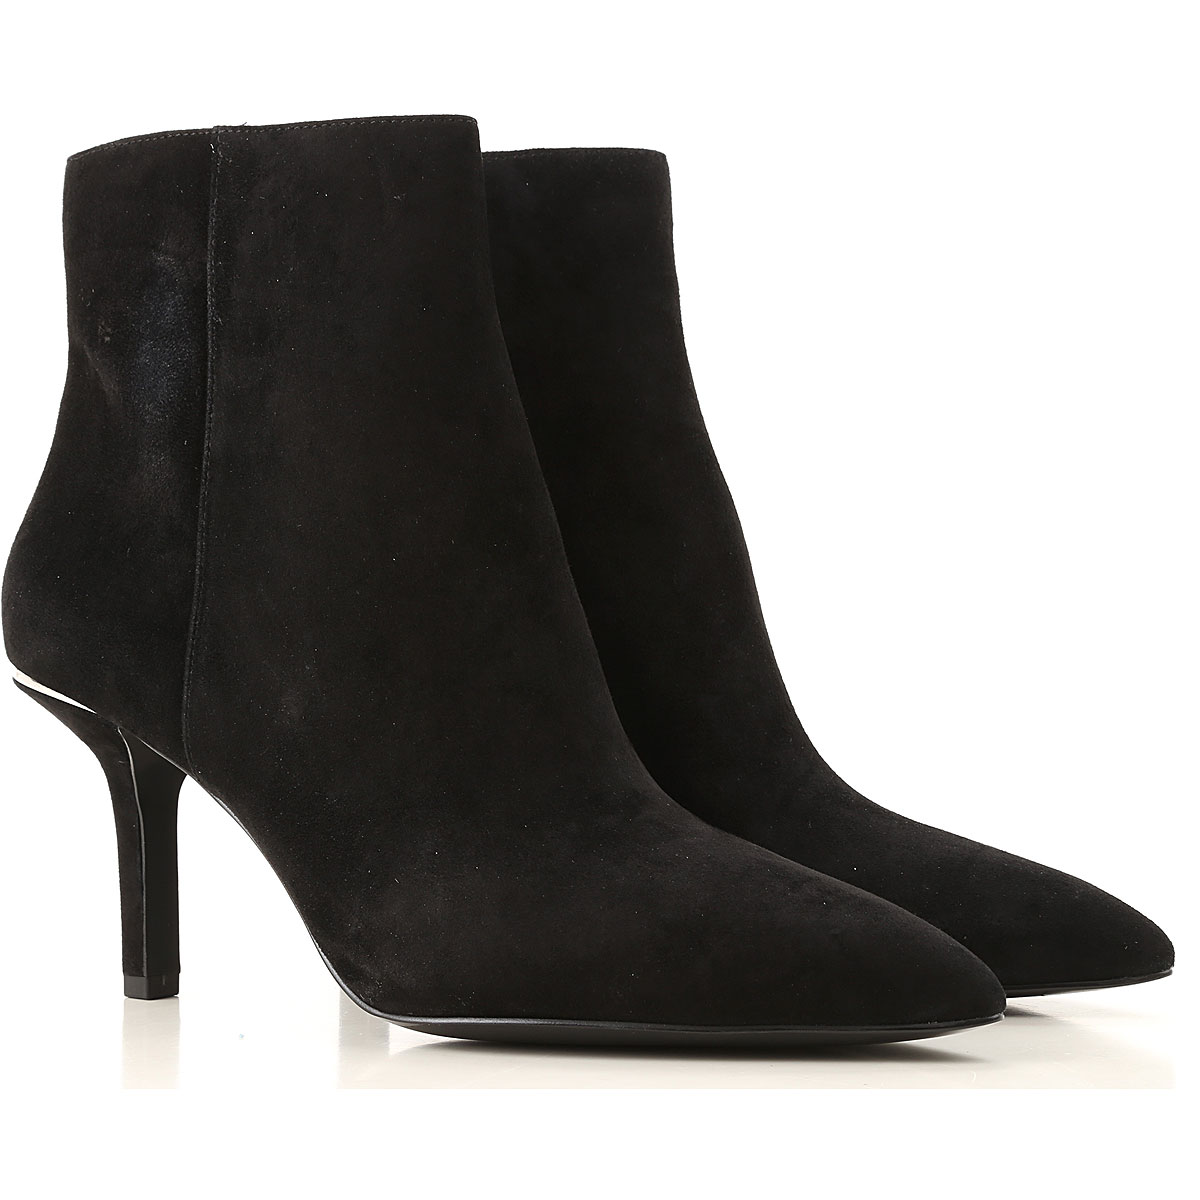 Michael Kors Boots for Women, Booties On Sale, Black, Suede leather, 2019, 6 7 8.5